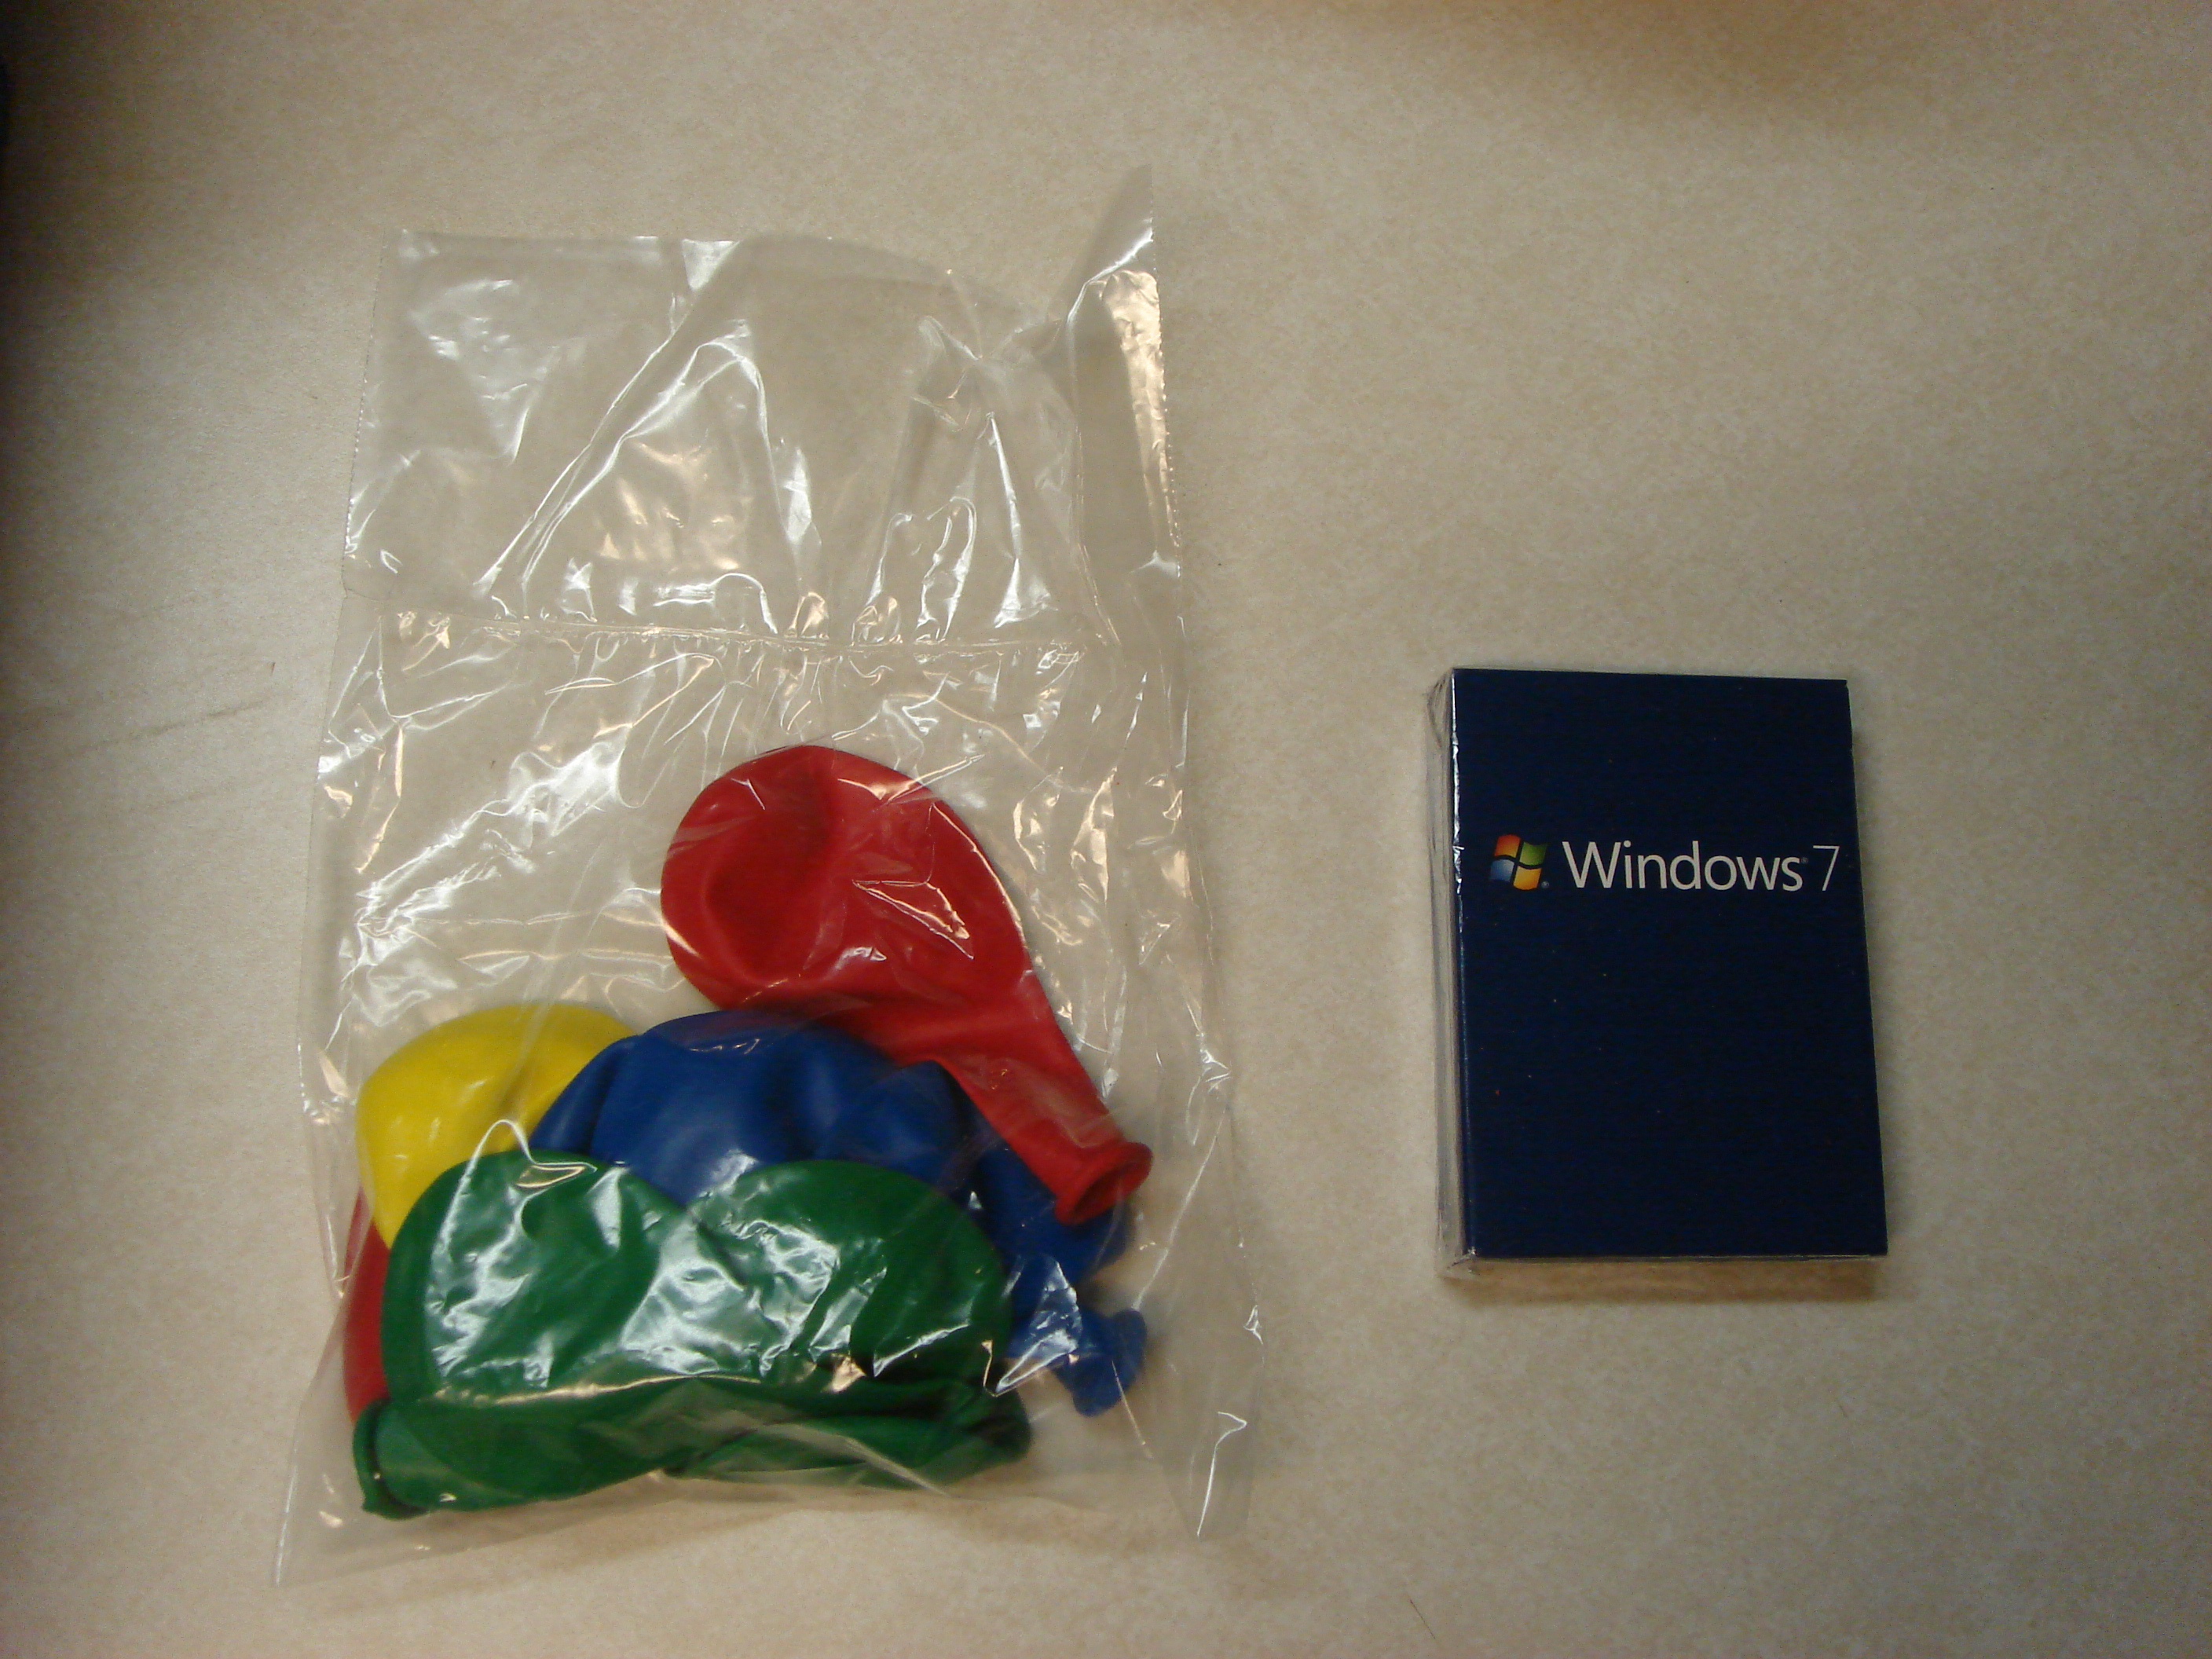 Windows 7 Balloons and Playing Cards